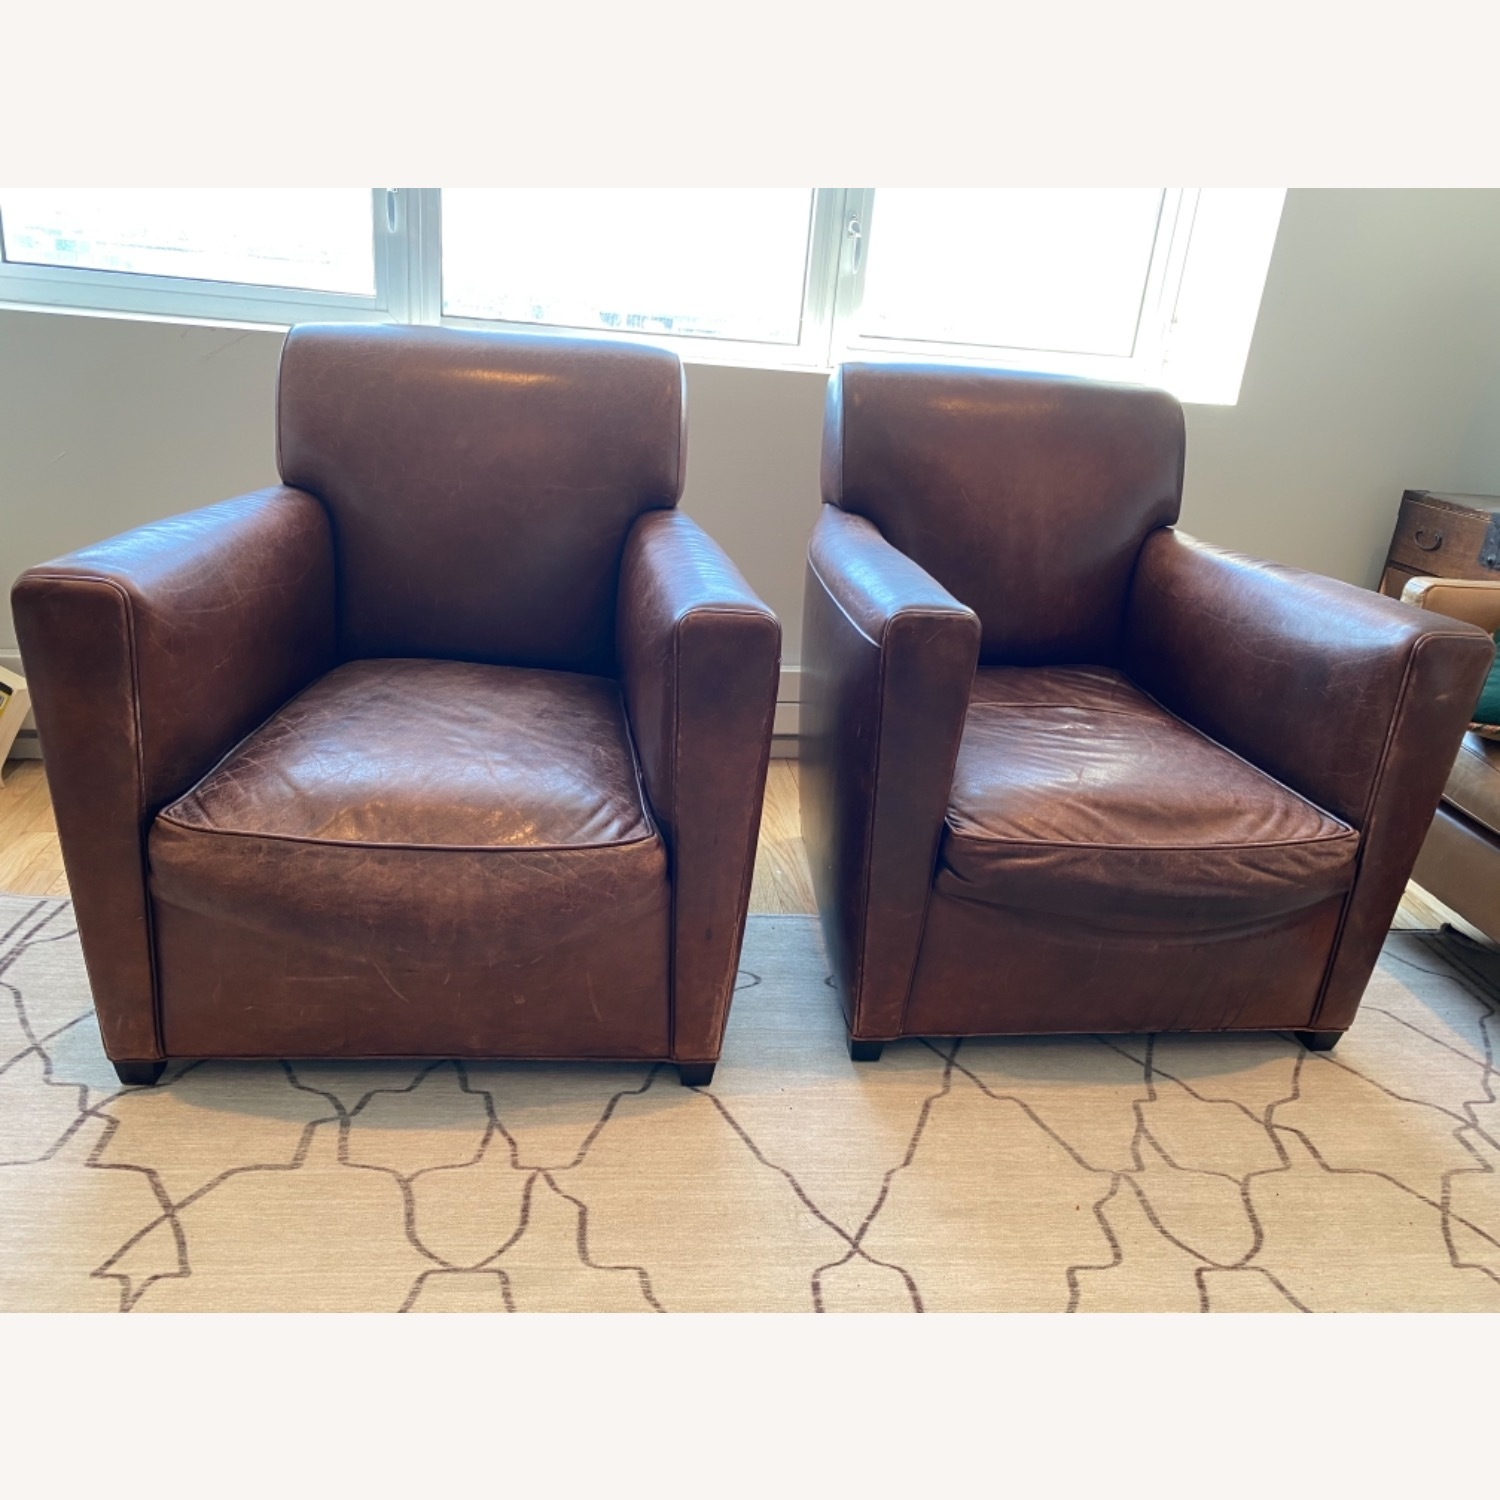 Baker + Coach Leather Club Chairs - Set of 2 - image-5